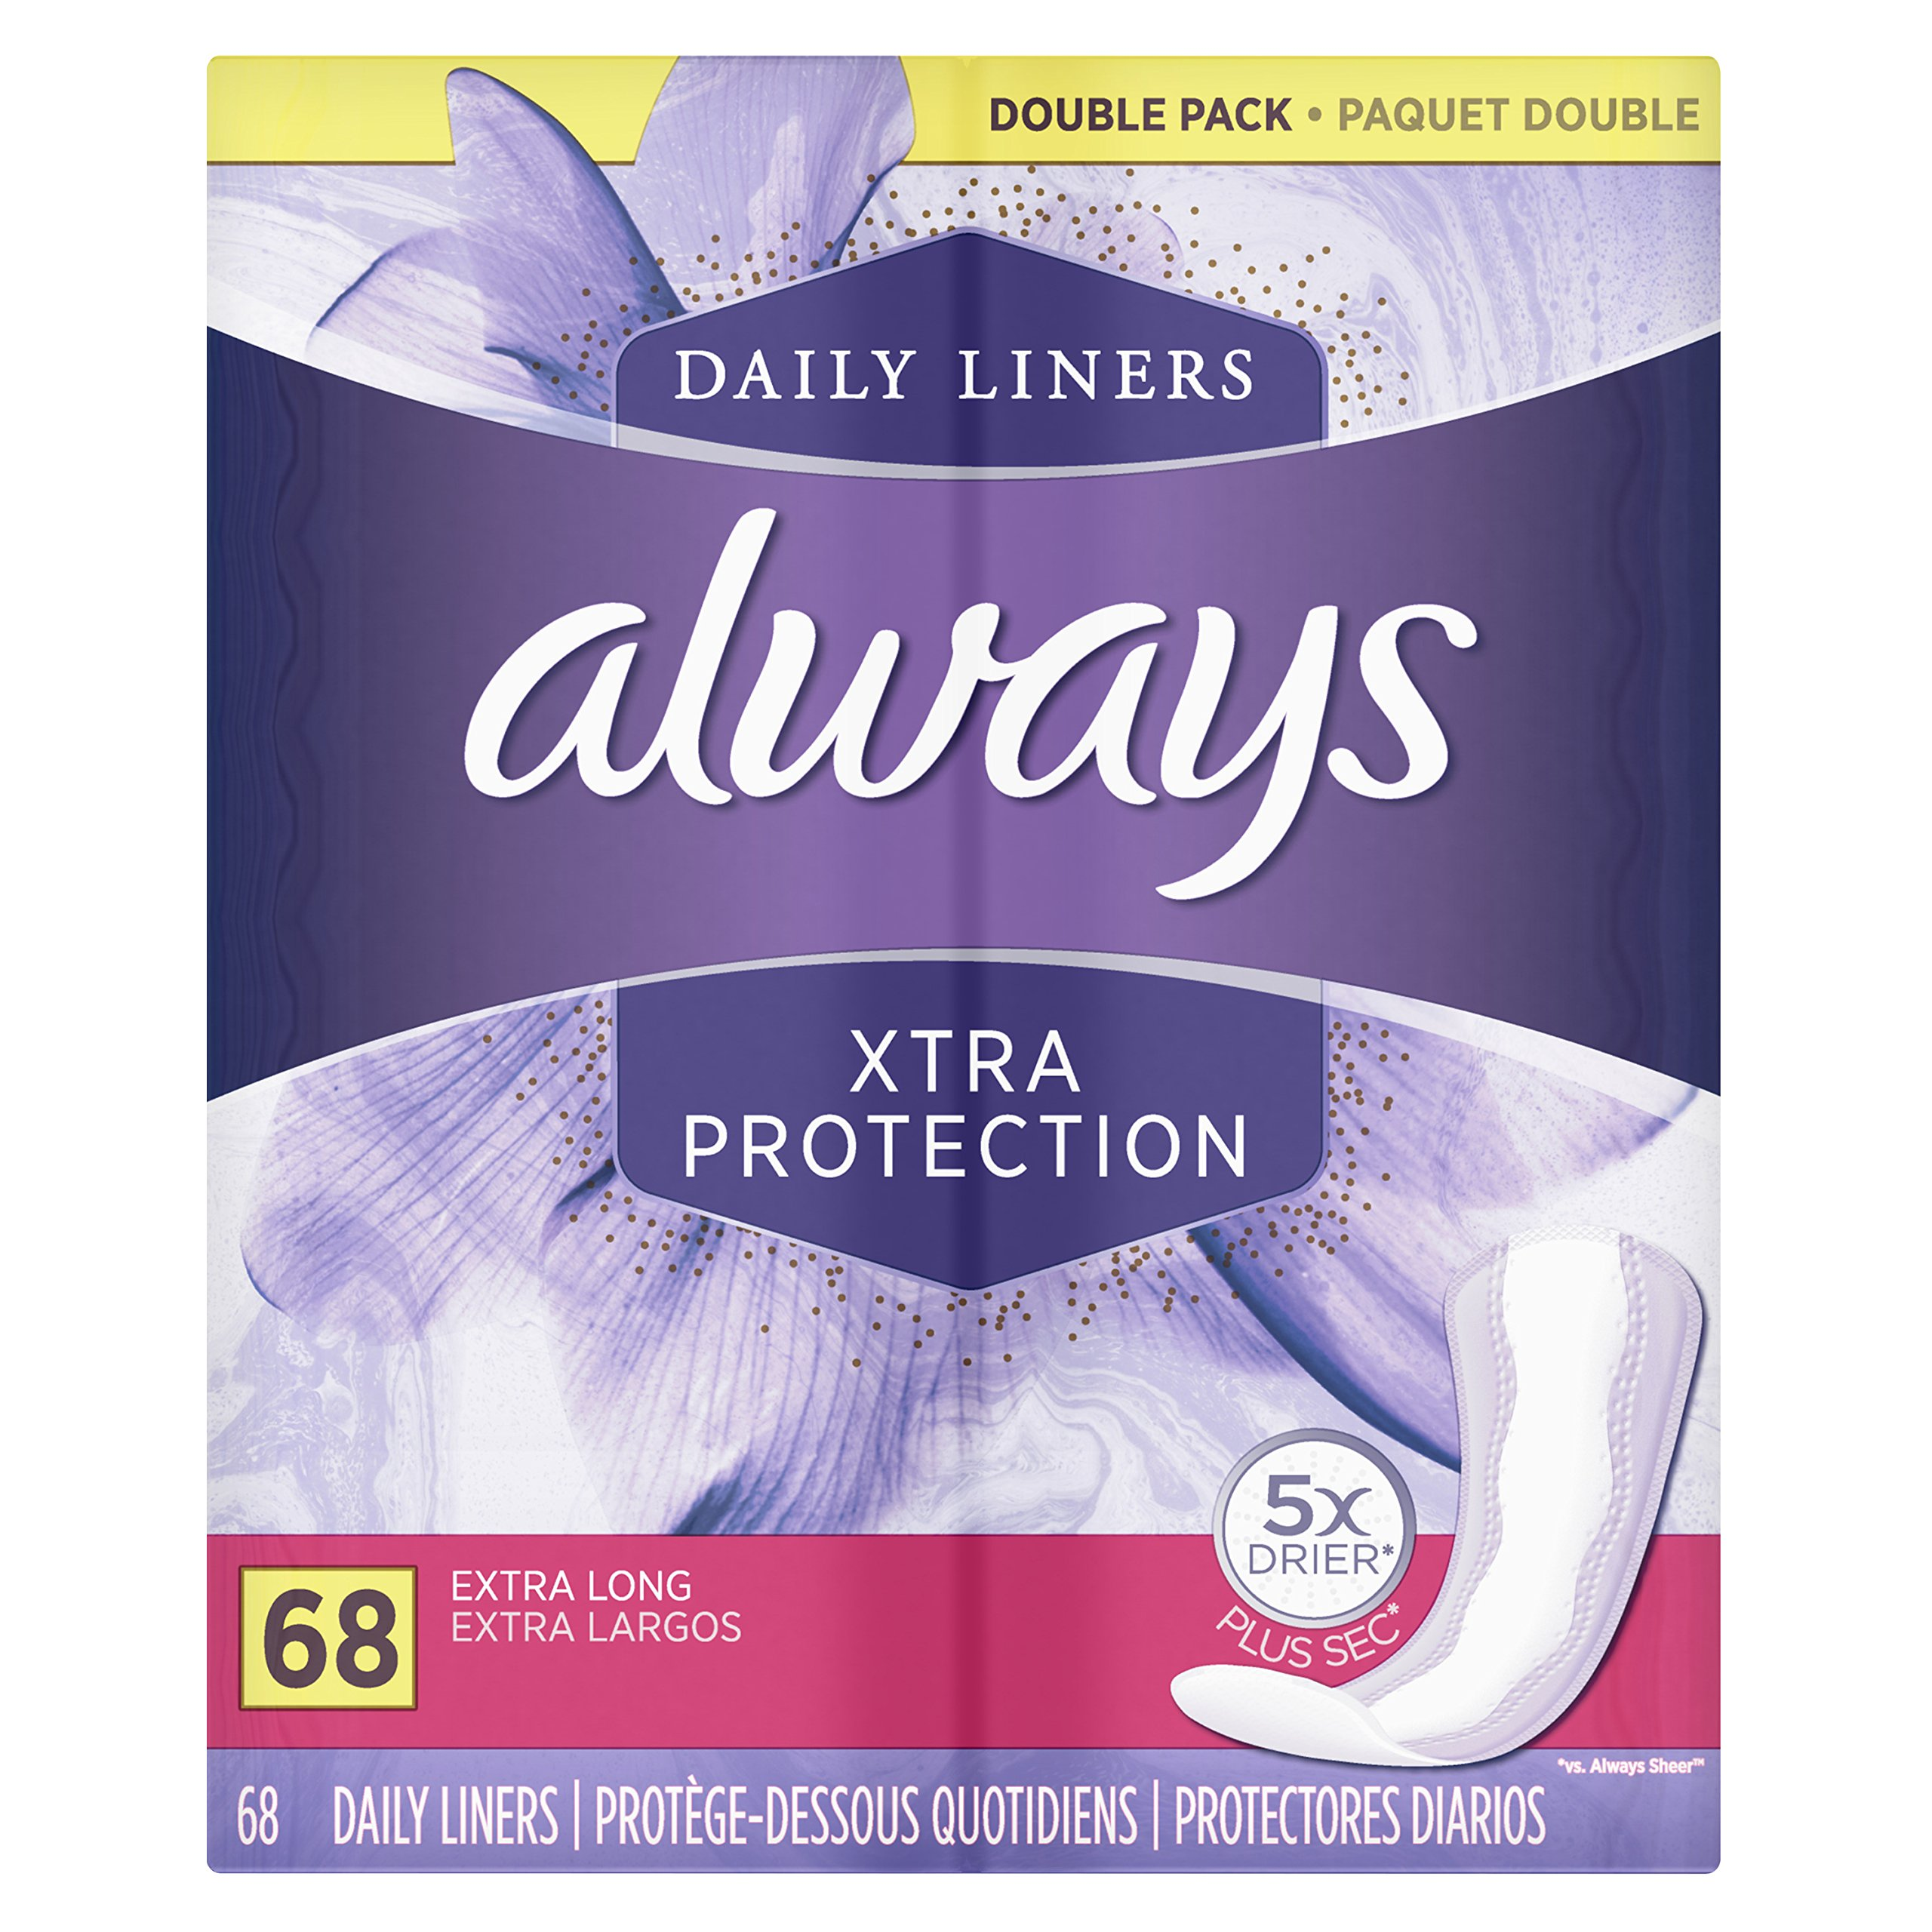 Always Xtra Protection Daily Liners, Extra Long Feminine Panty Liners, 68 Count - Pack of 4 (272 Total Count) by Always (Image #7)